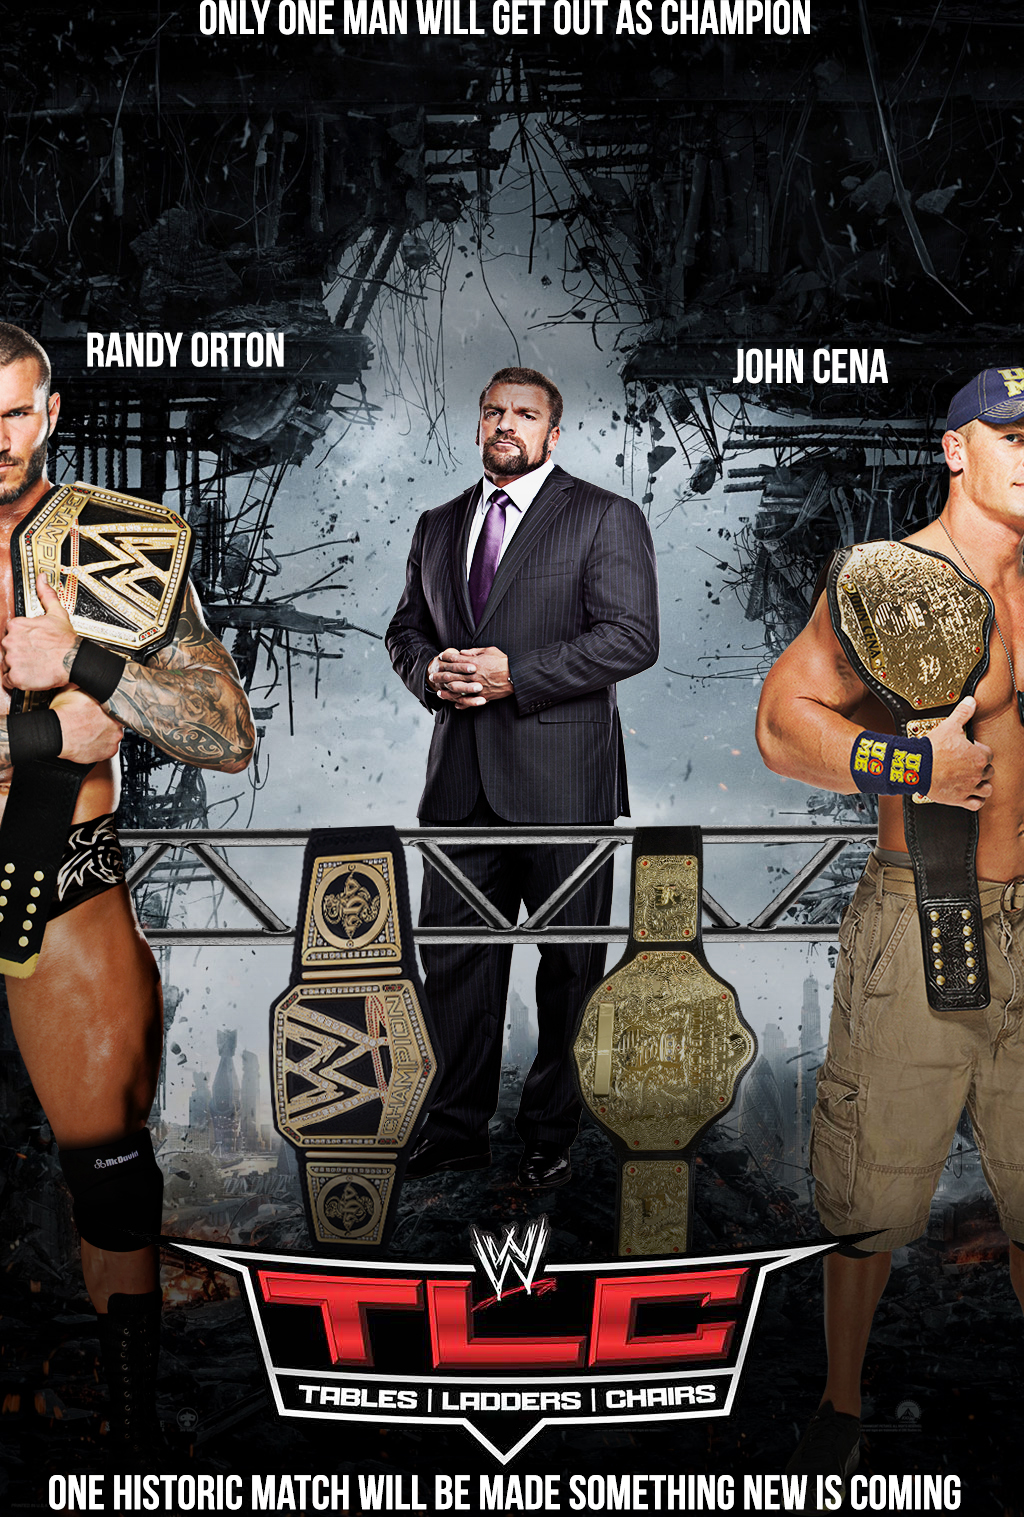 Wwe tables ladders and chairs 2013 poster -  Tlc Poster 2013 By Menasamih